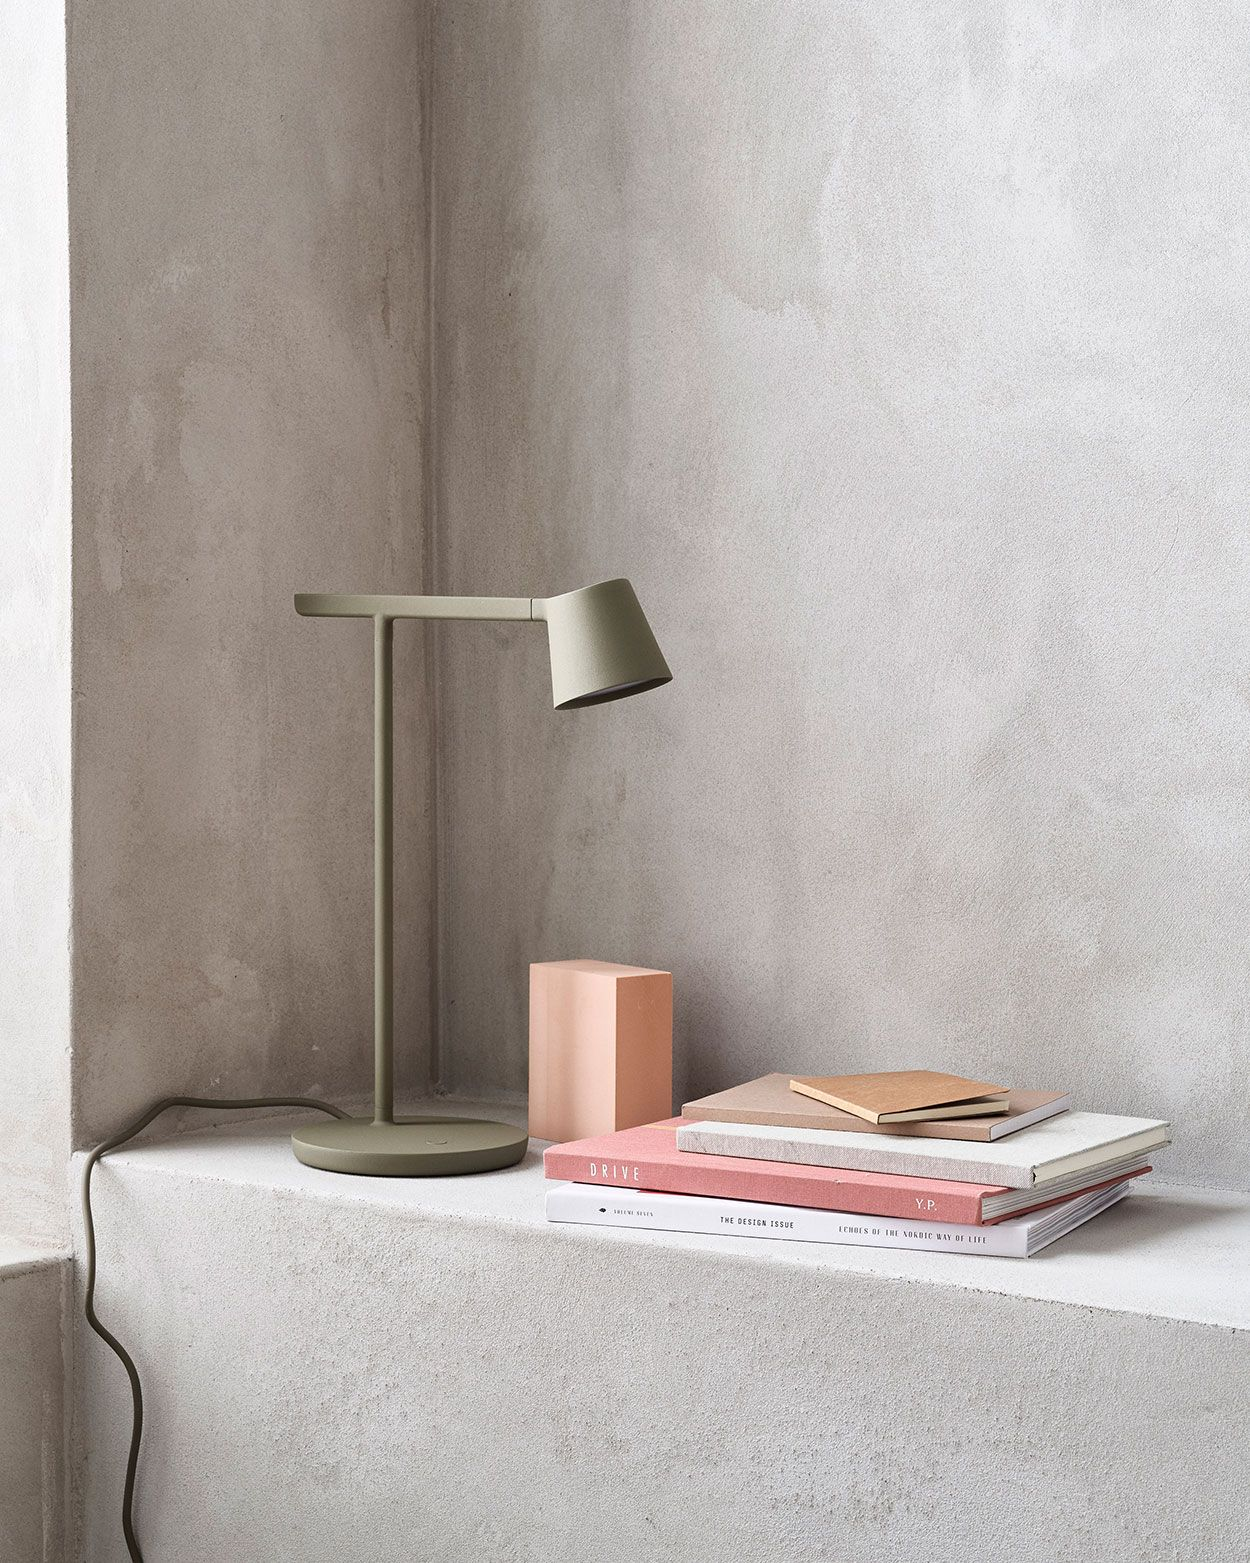 Scandinavian lighting inspiration from muuto created from the idea of stripping a design down to its essentials the tip lamp is an example of simple